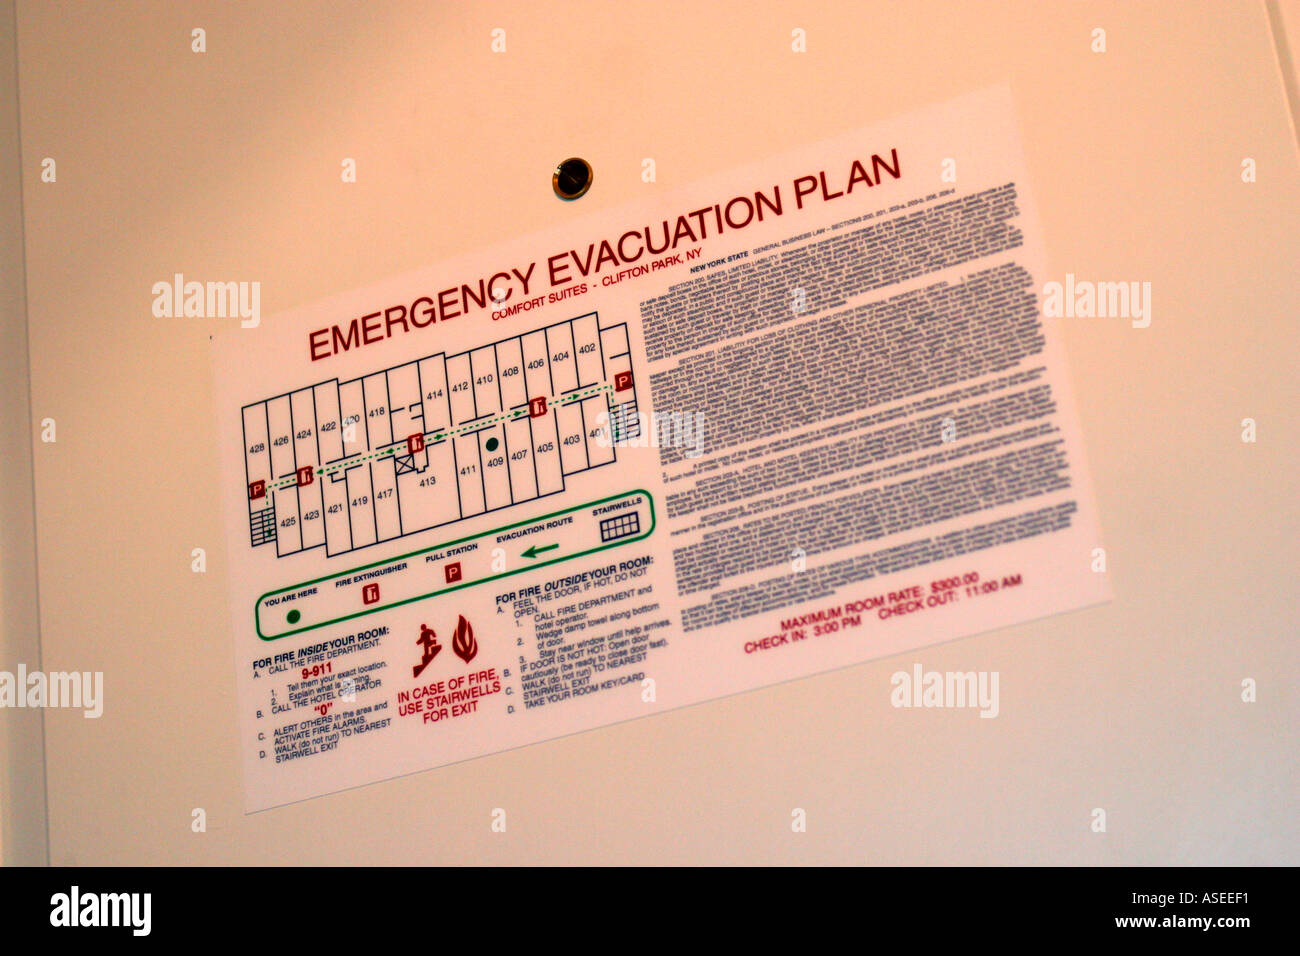 Emergency Evacuation Plan Sign In Hotel Room Stock Photo